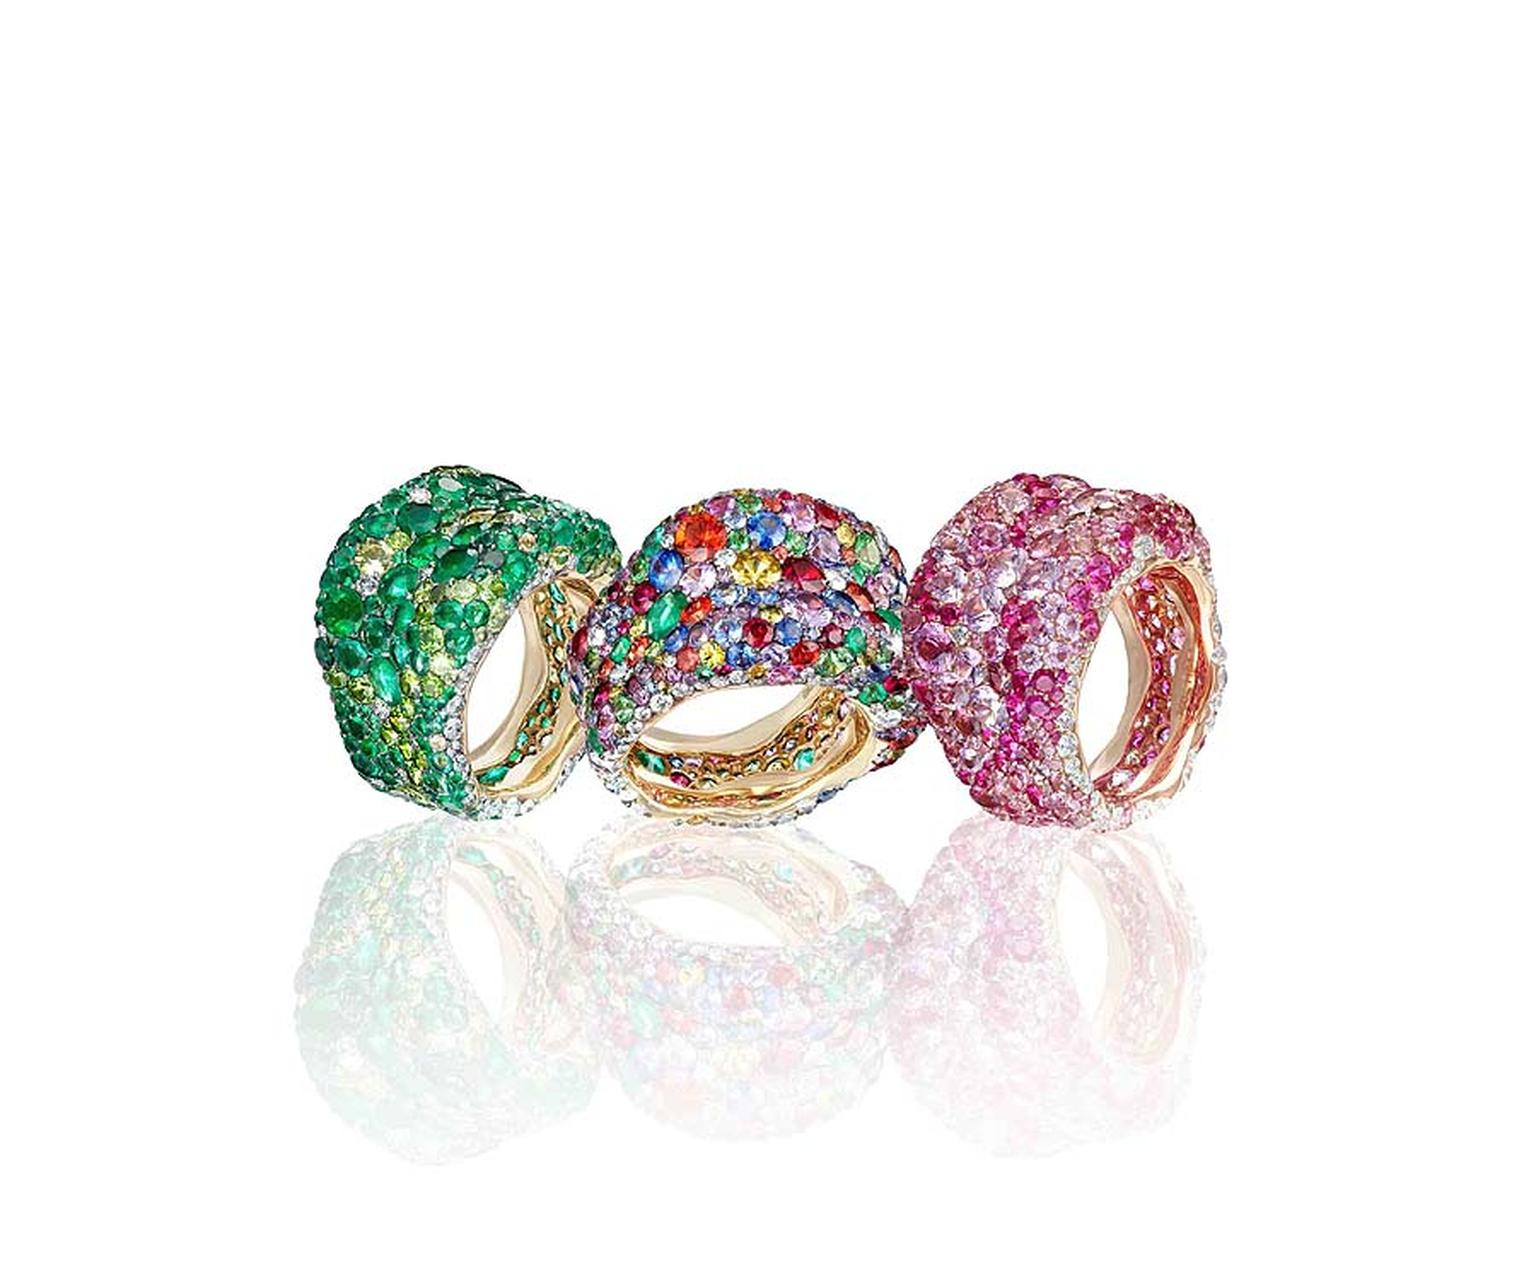 FabergeEmotionrings005.jpg